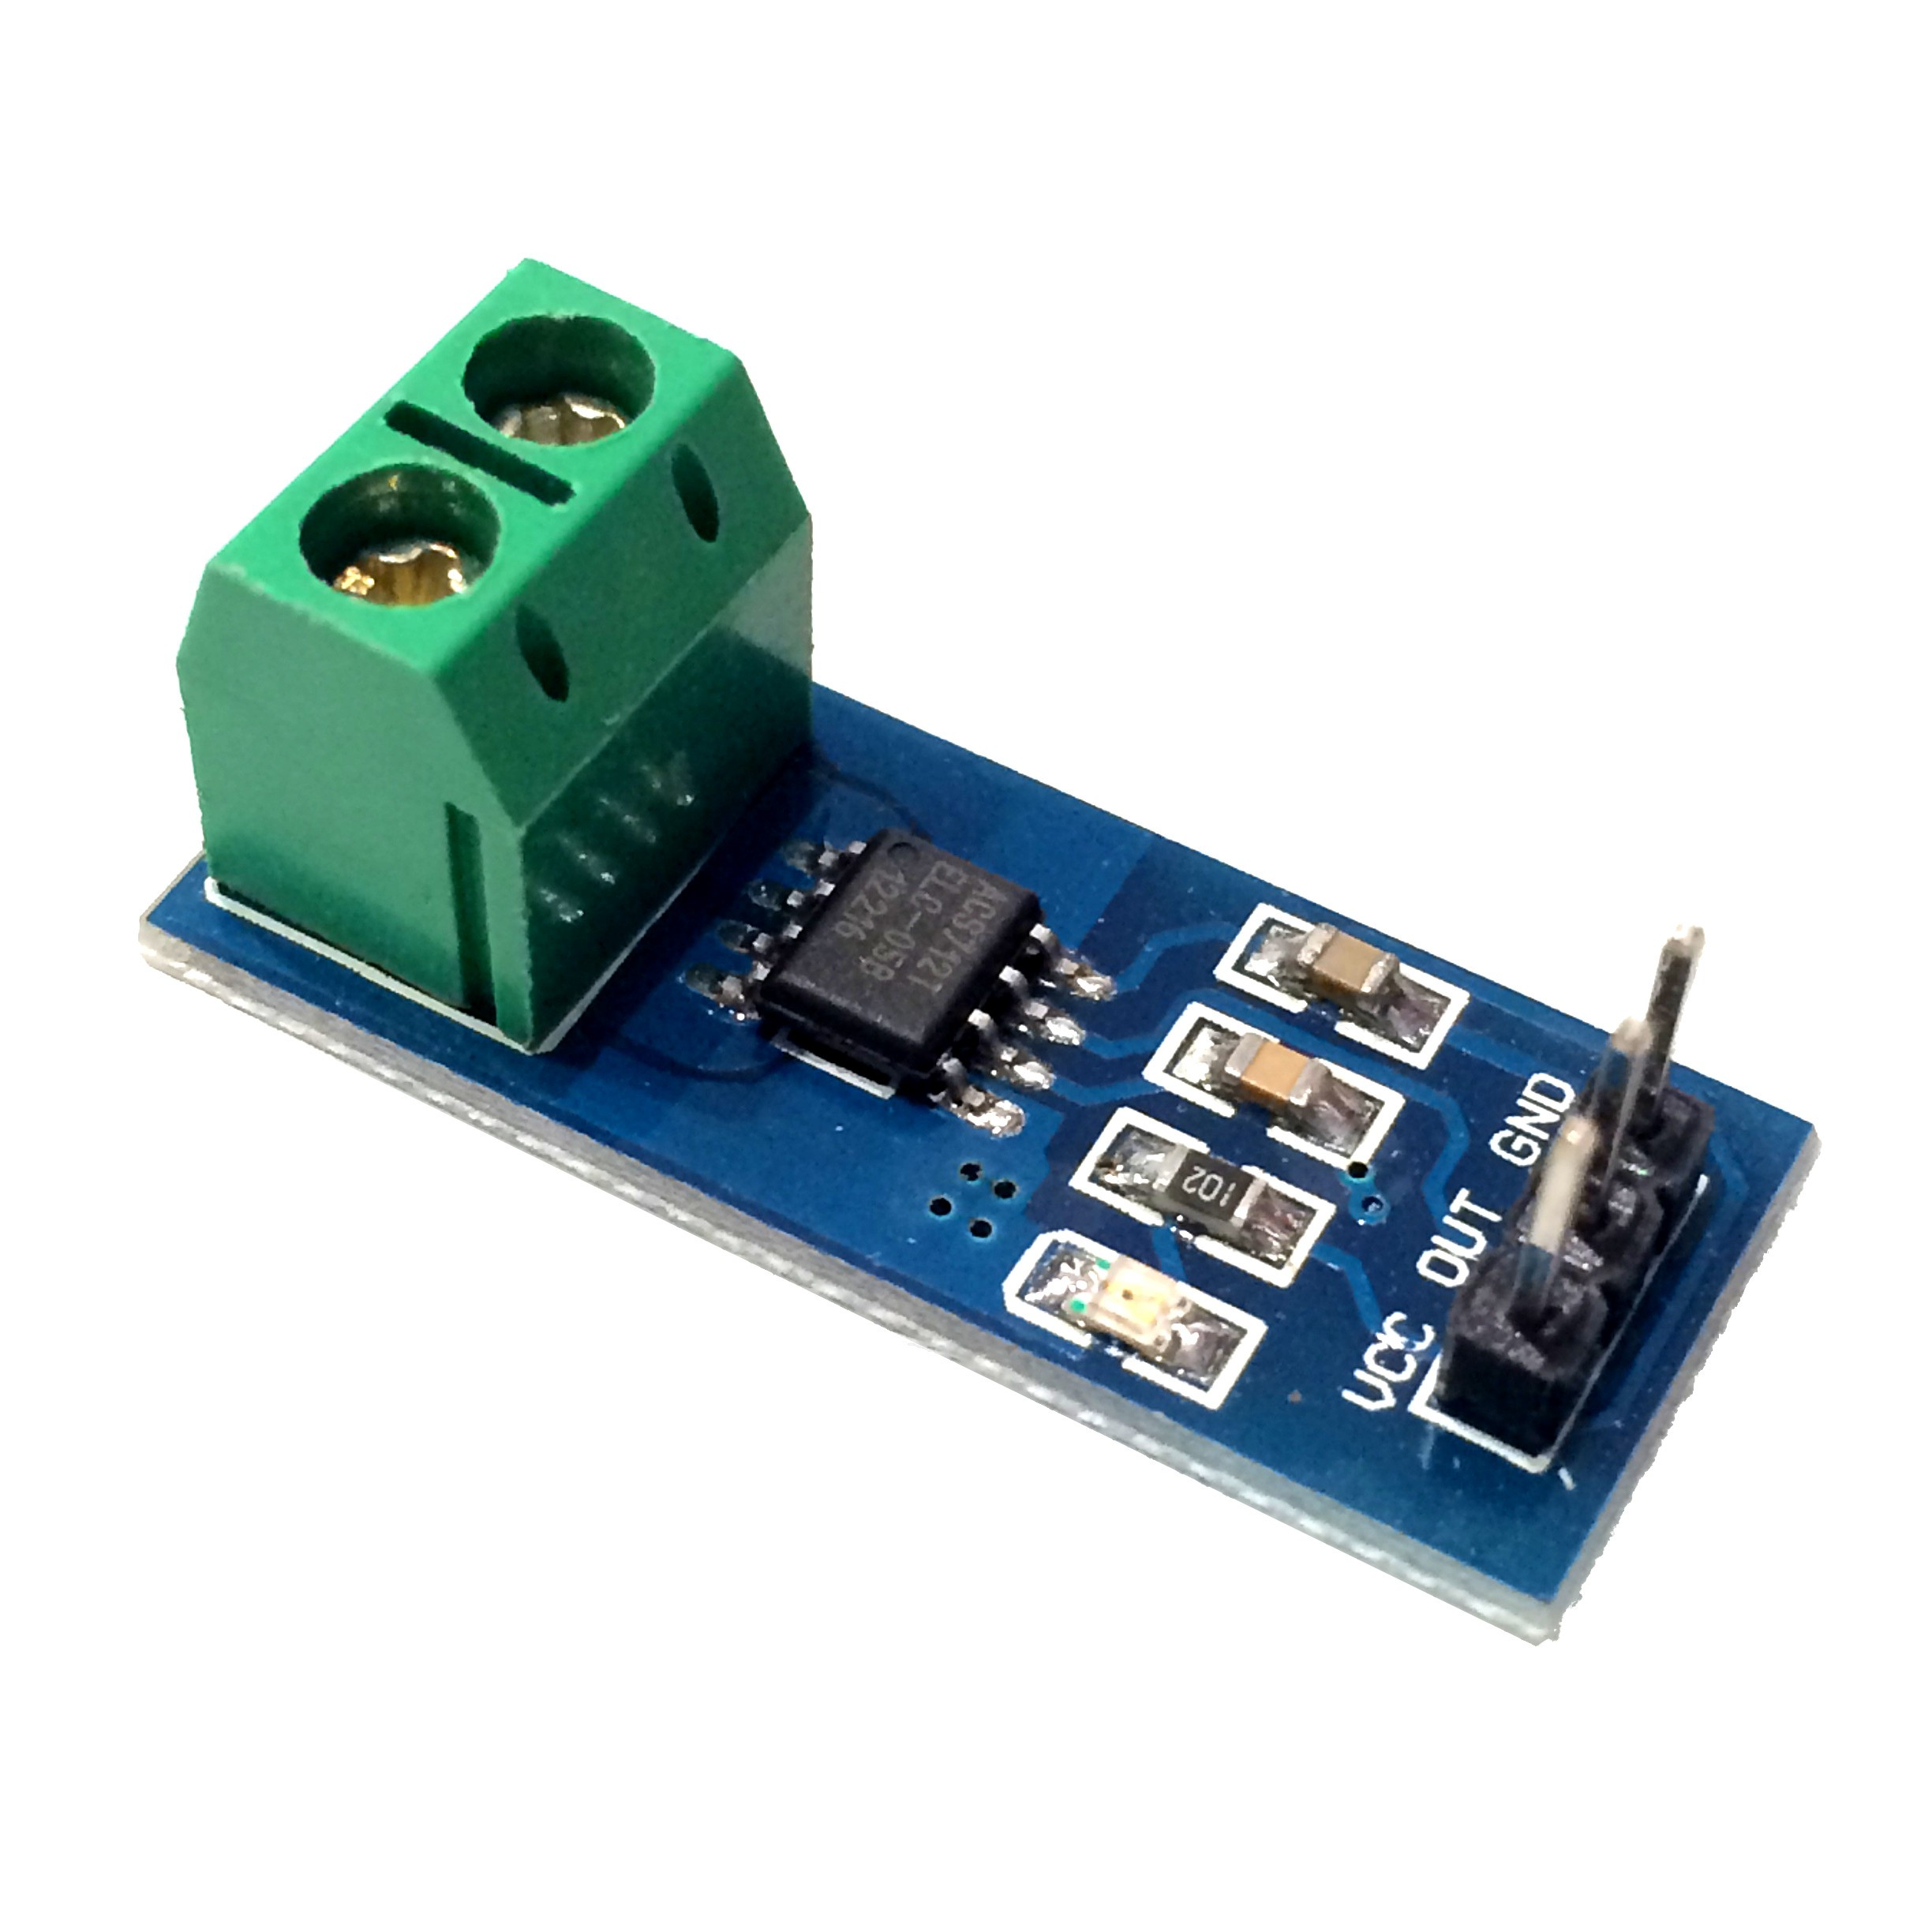 5A Hall-Effect Current Sensor Breakout ACS712 - Tinkersphere